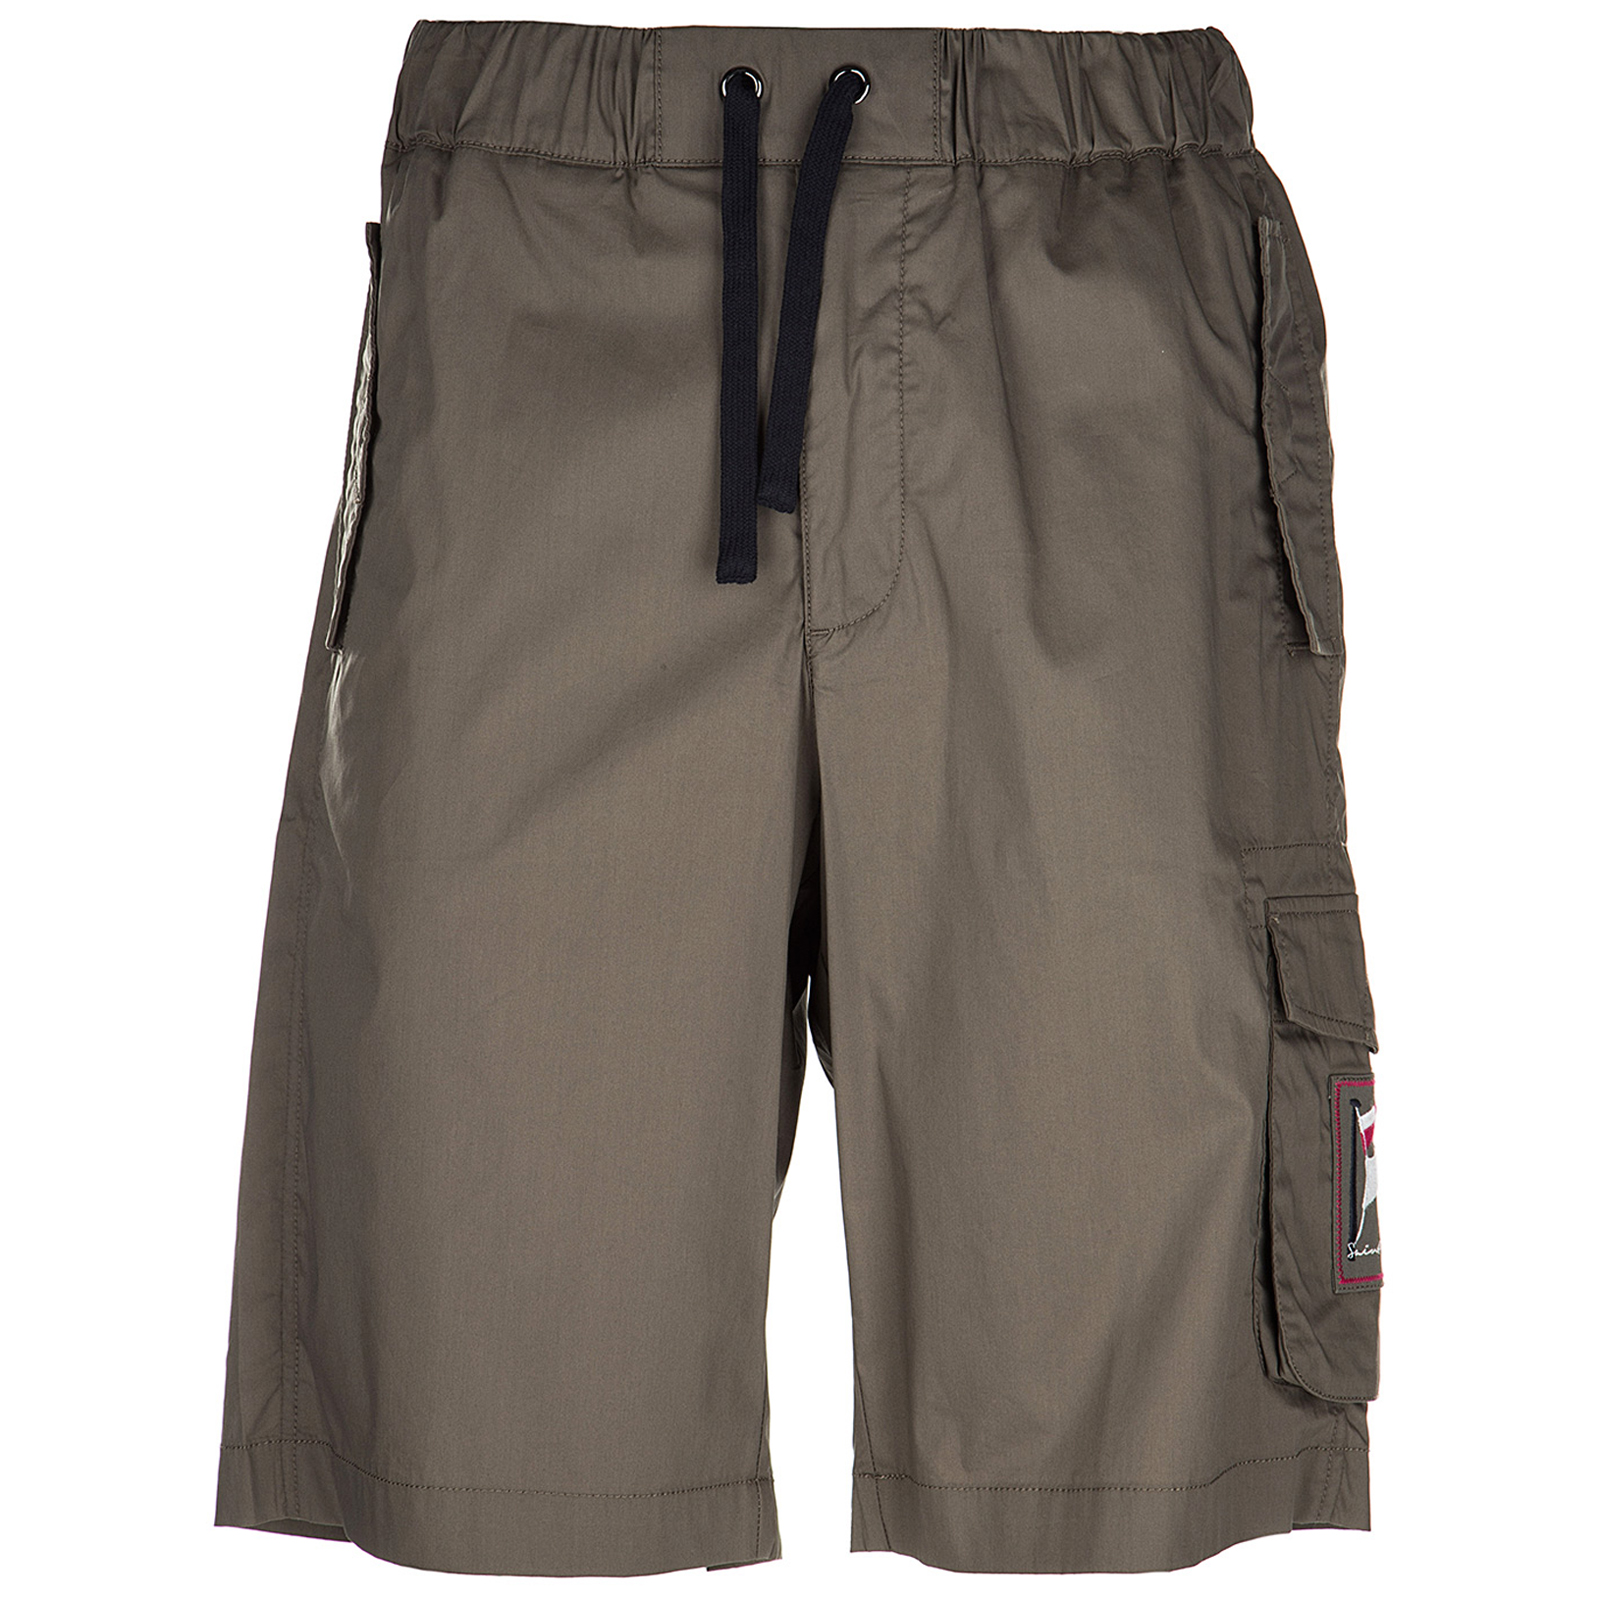 Men's shorts bermuda